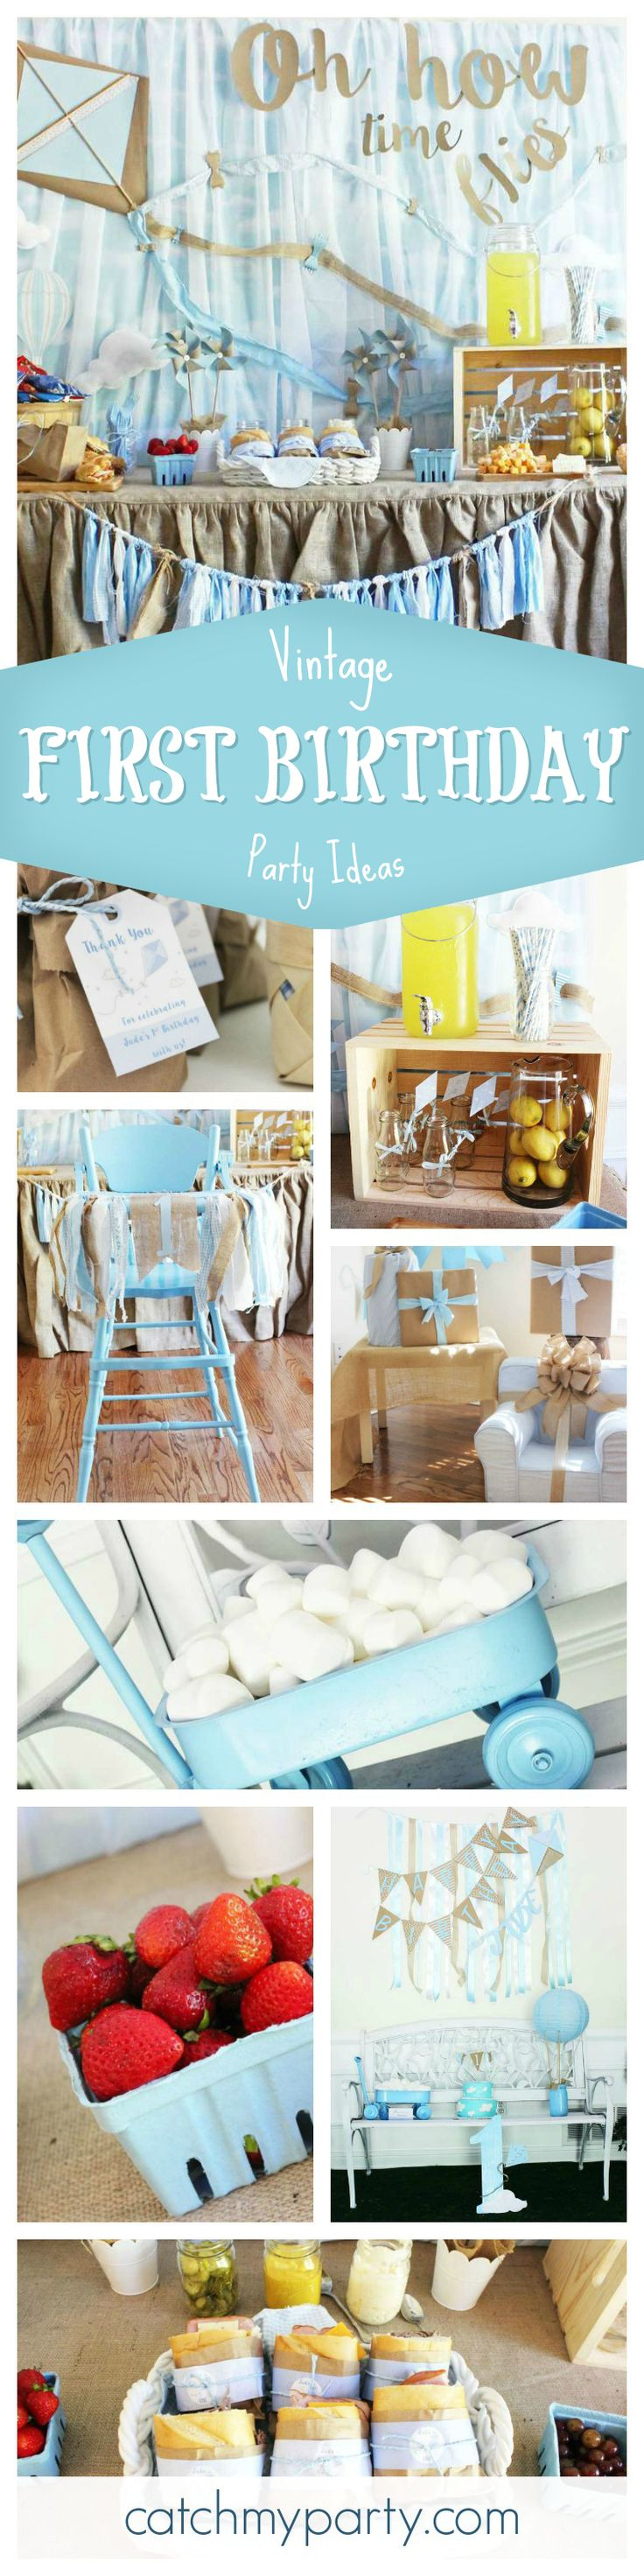 """""""Oh, how times flies"""" with this little boys Vintage Kite 1st Birthday party. You won't want to miss it! The drinks bar is just so cute! See more party ideas at CatchMyParty.com"""